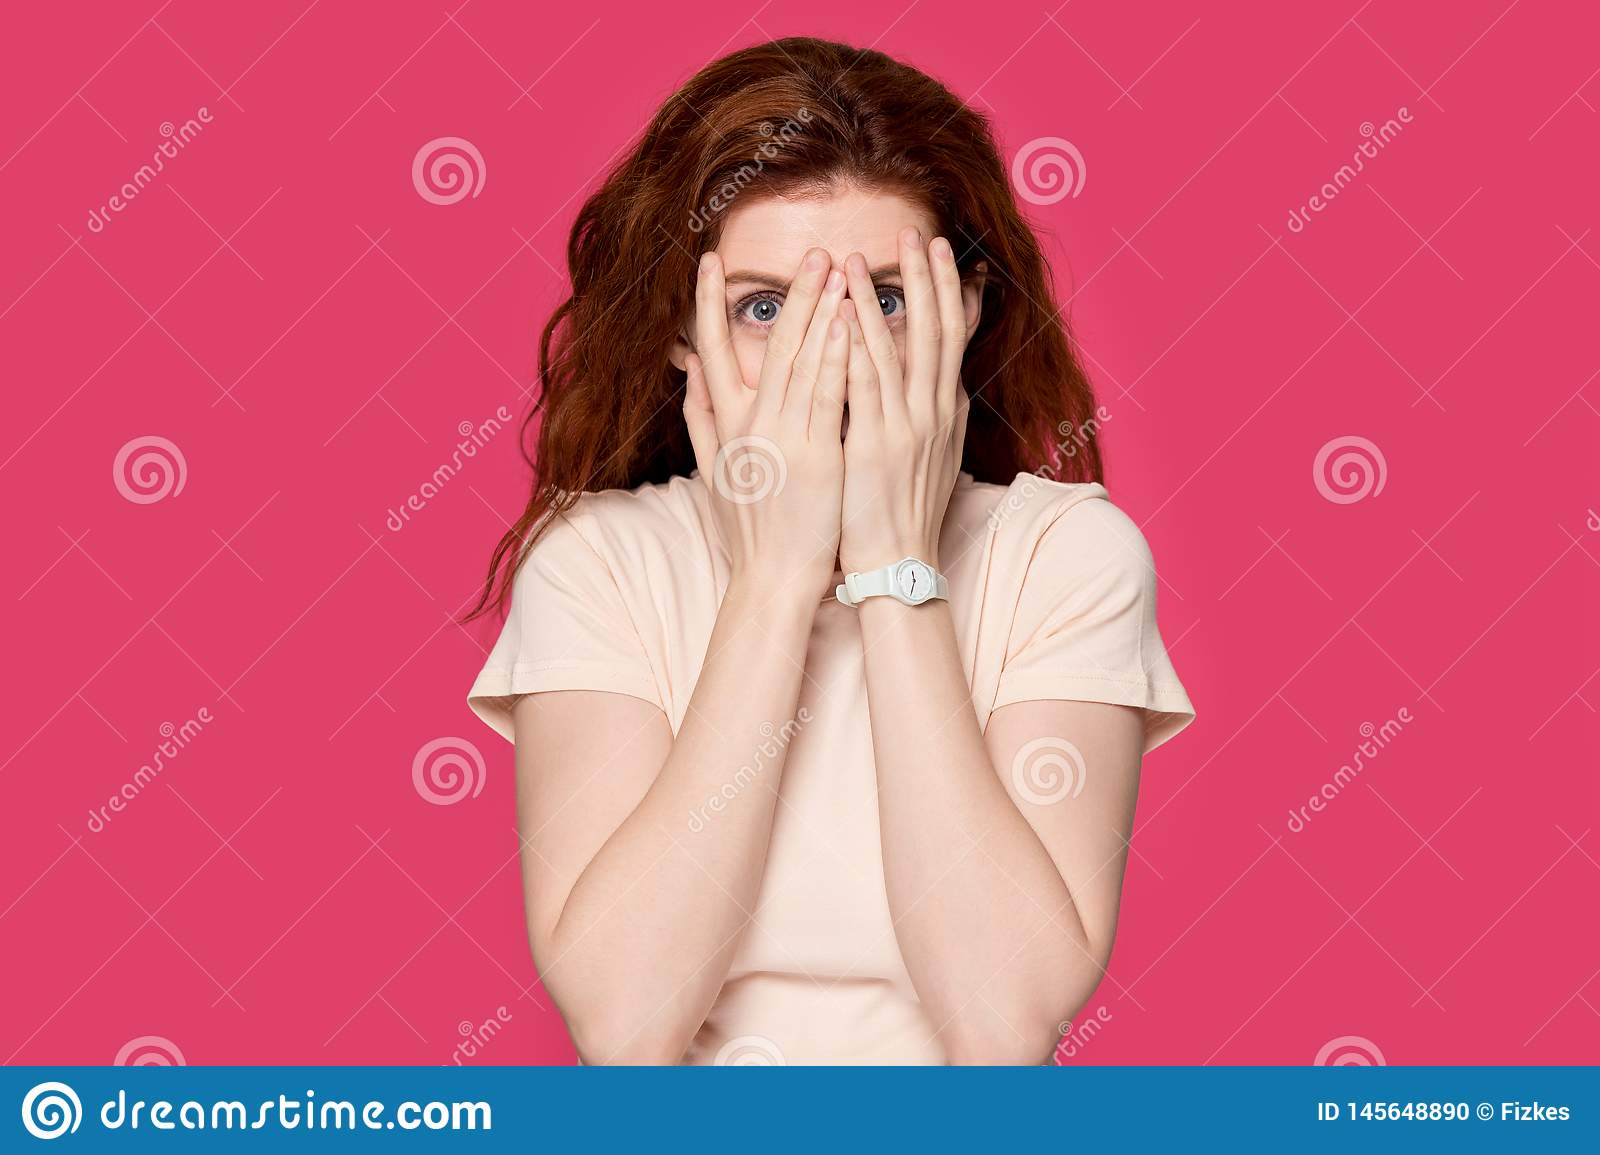 Scared redhead girl cover face peeking through fingers